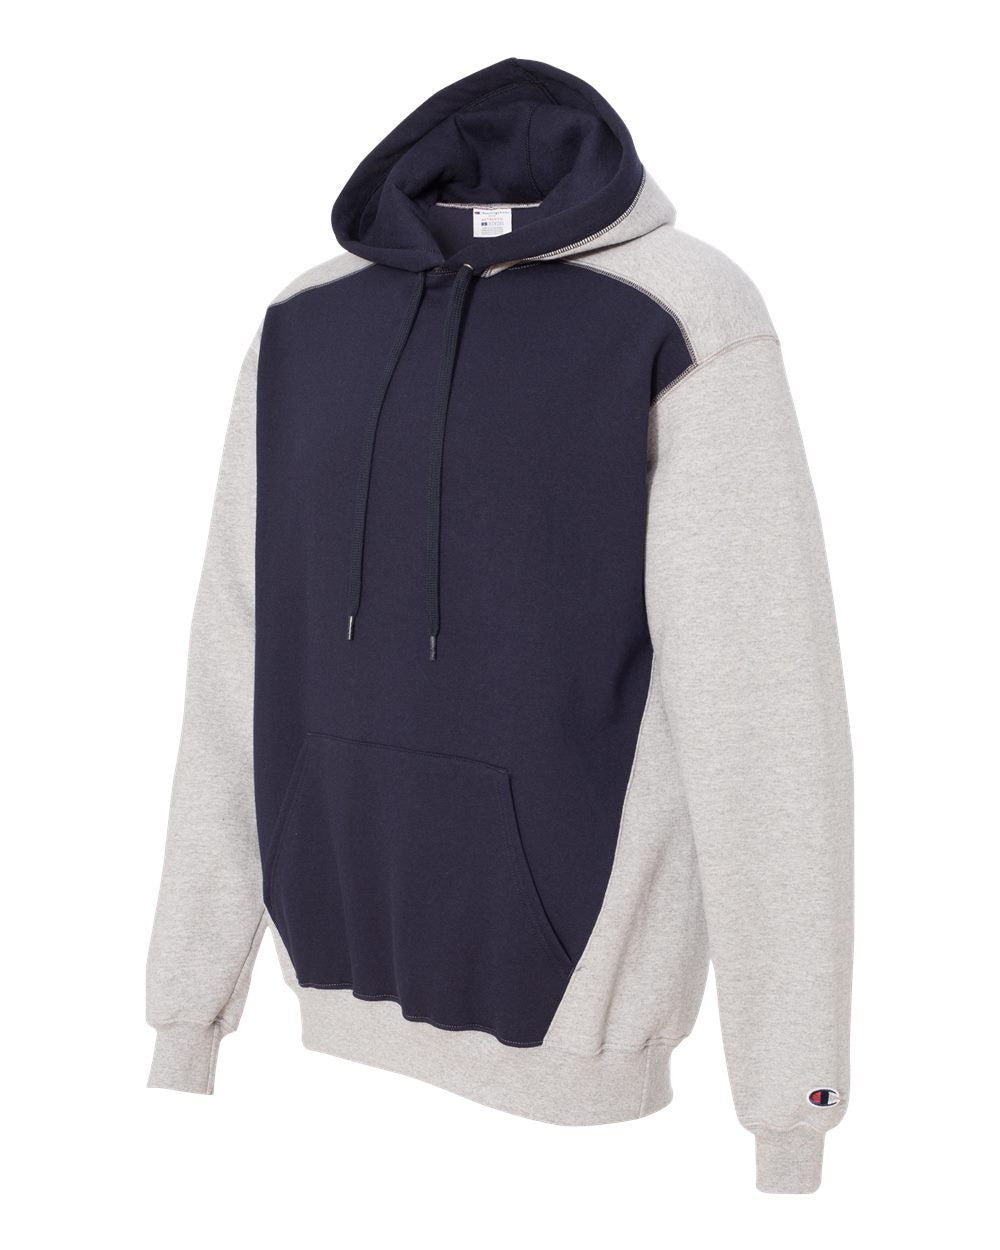 Hooded Sweatshirt by Champion - Discountedrack.com